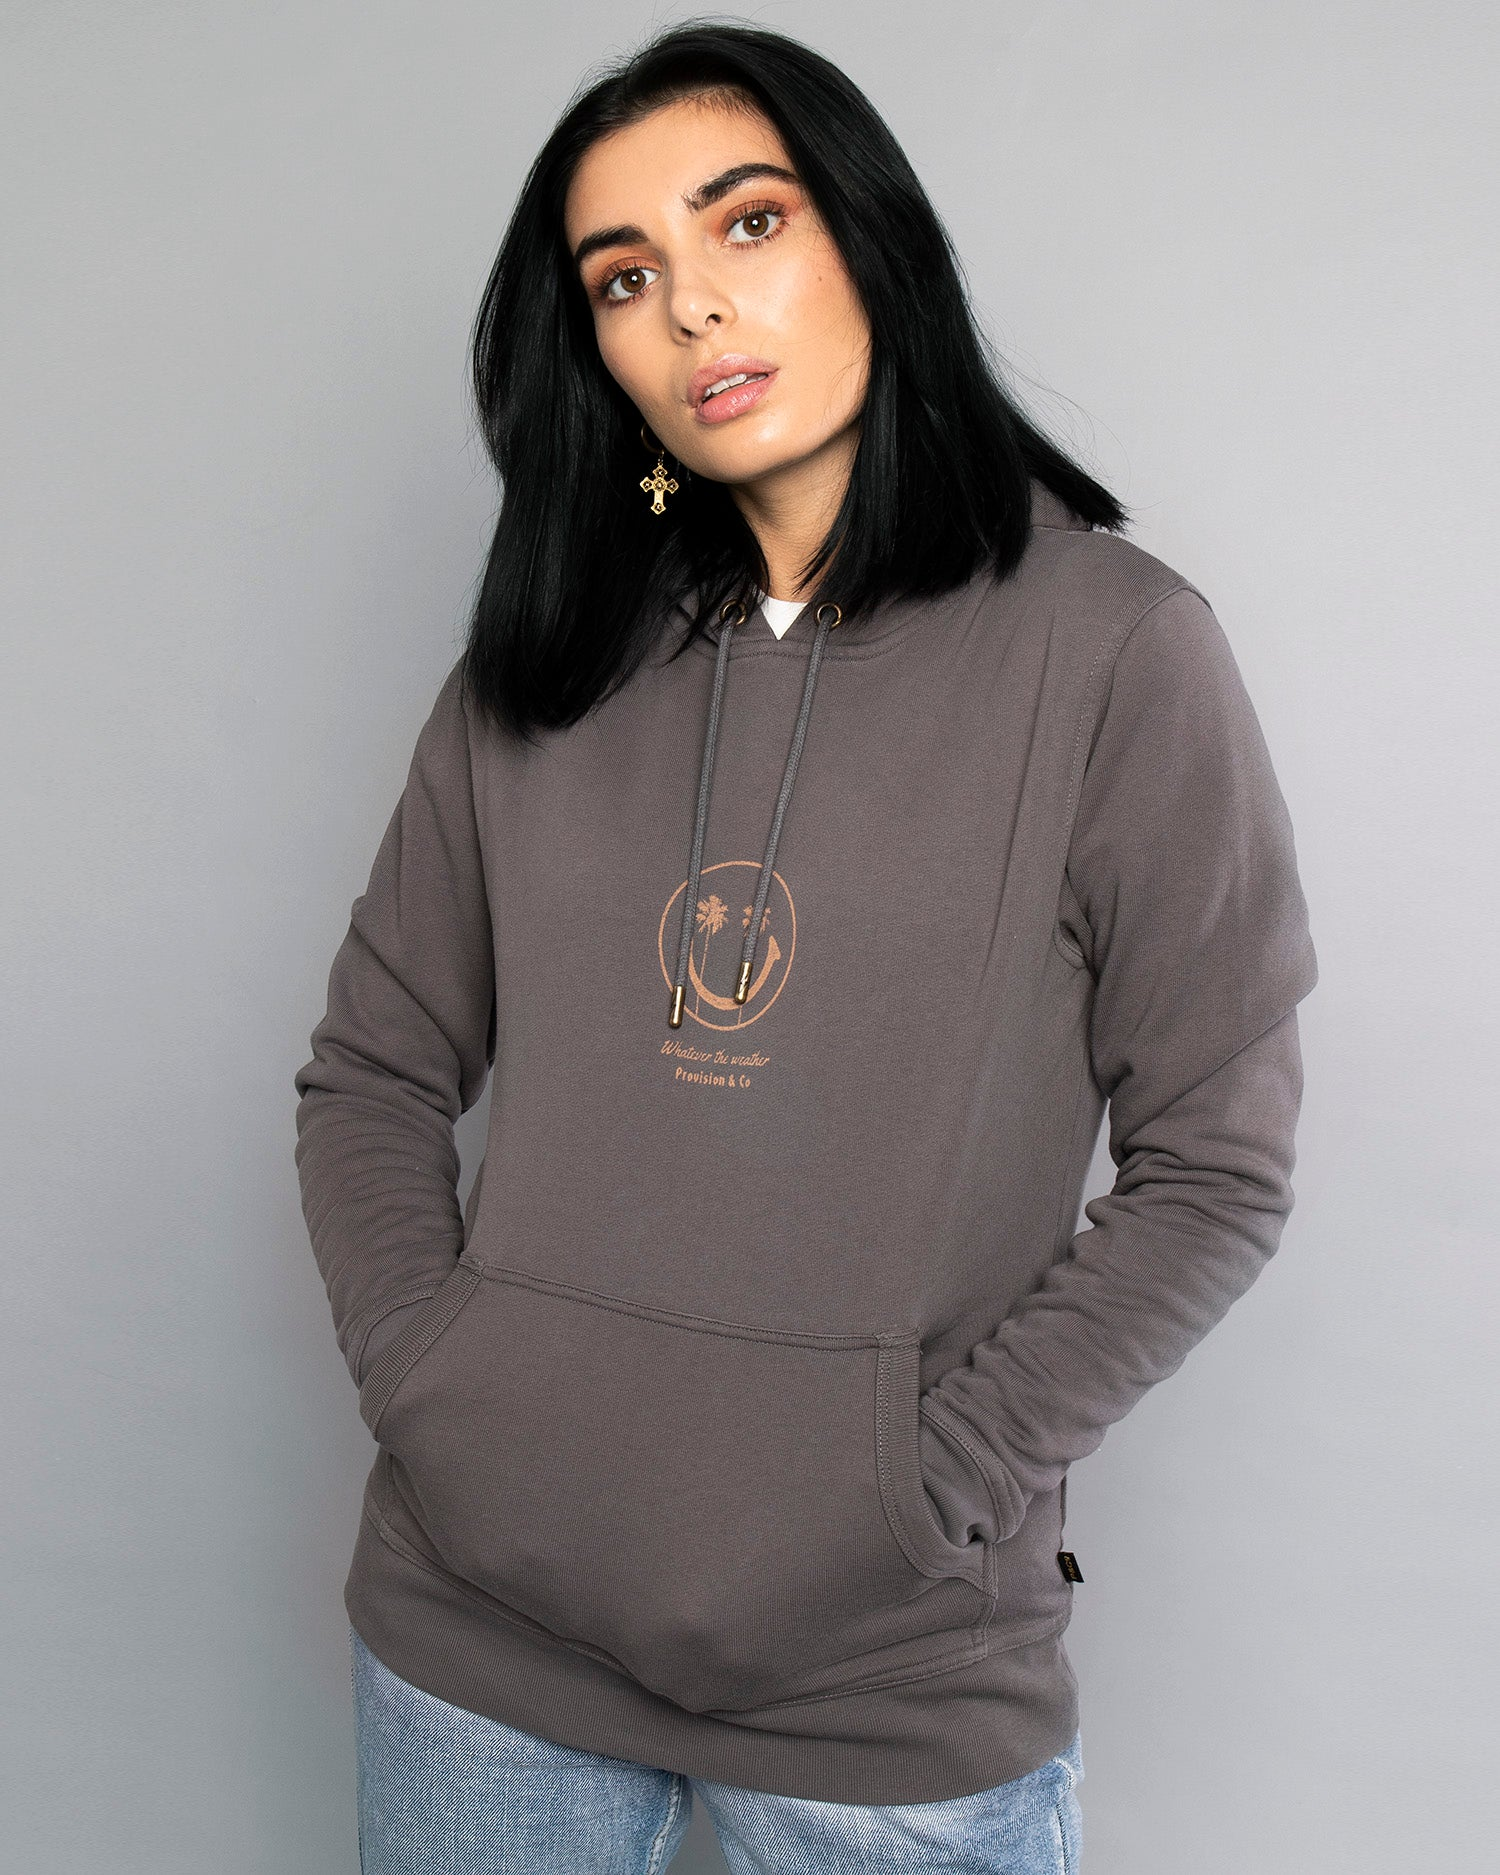 Whatever The Weather Pullover Grey Hoodie